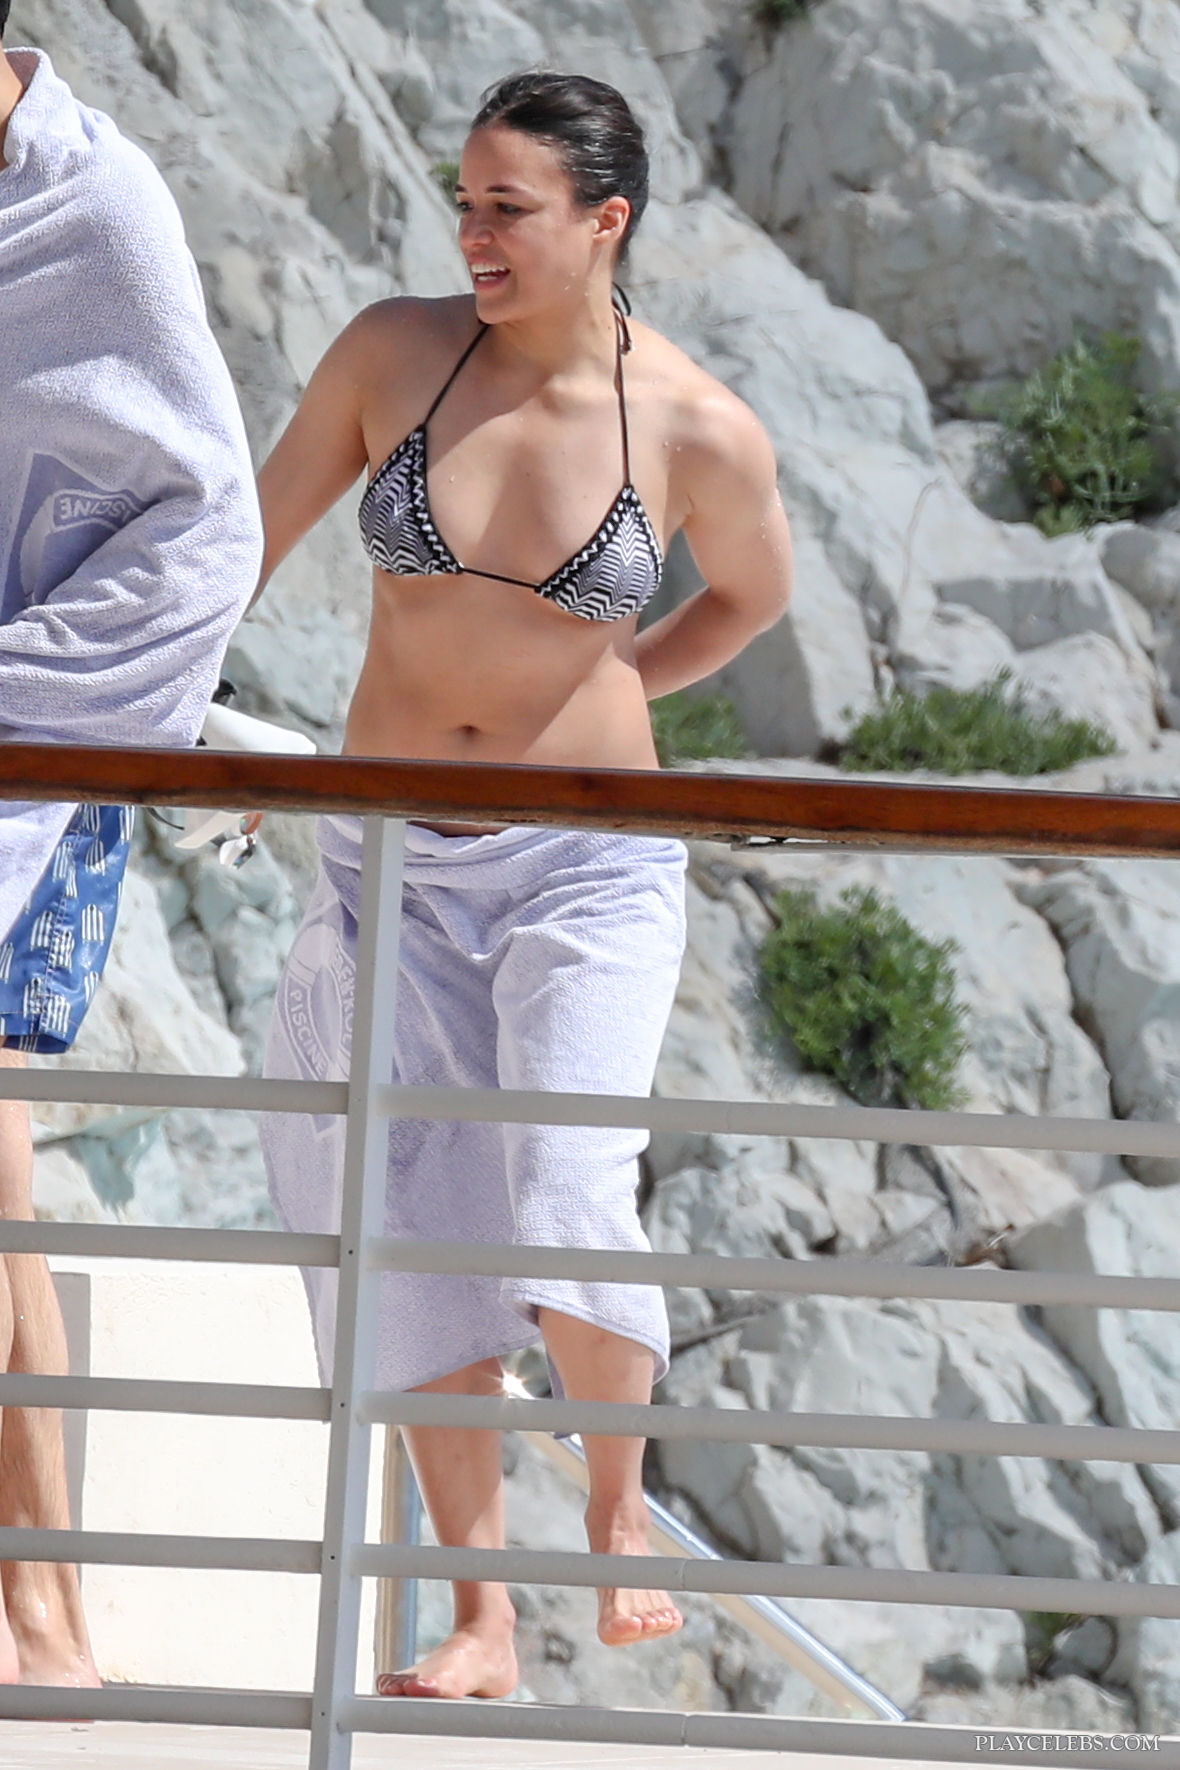 Michelle Rodriguez Sunbathing in Bikini At Eden Roc Hotel in Antibes, France